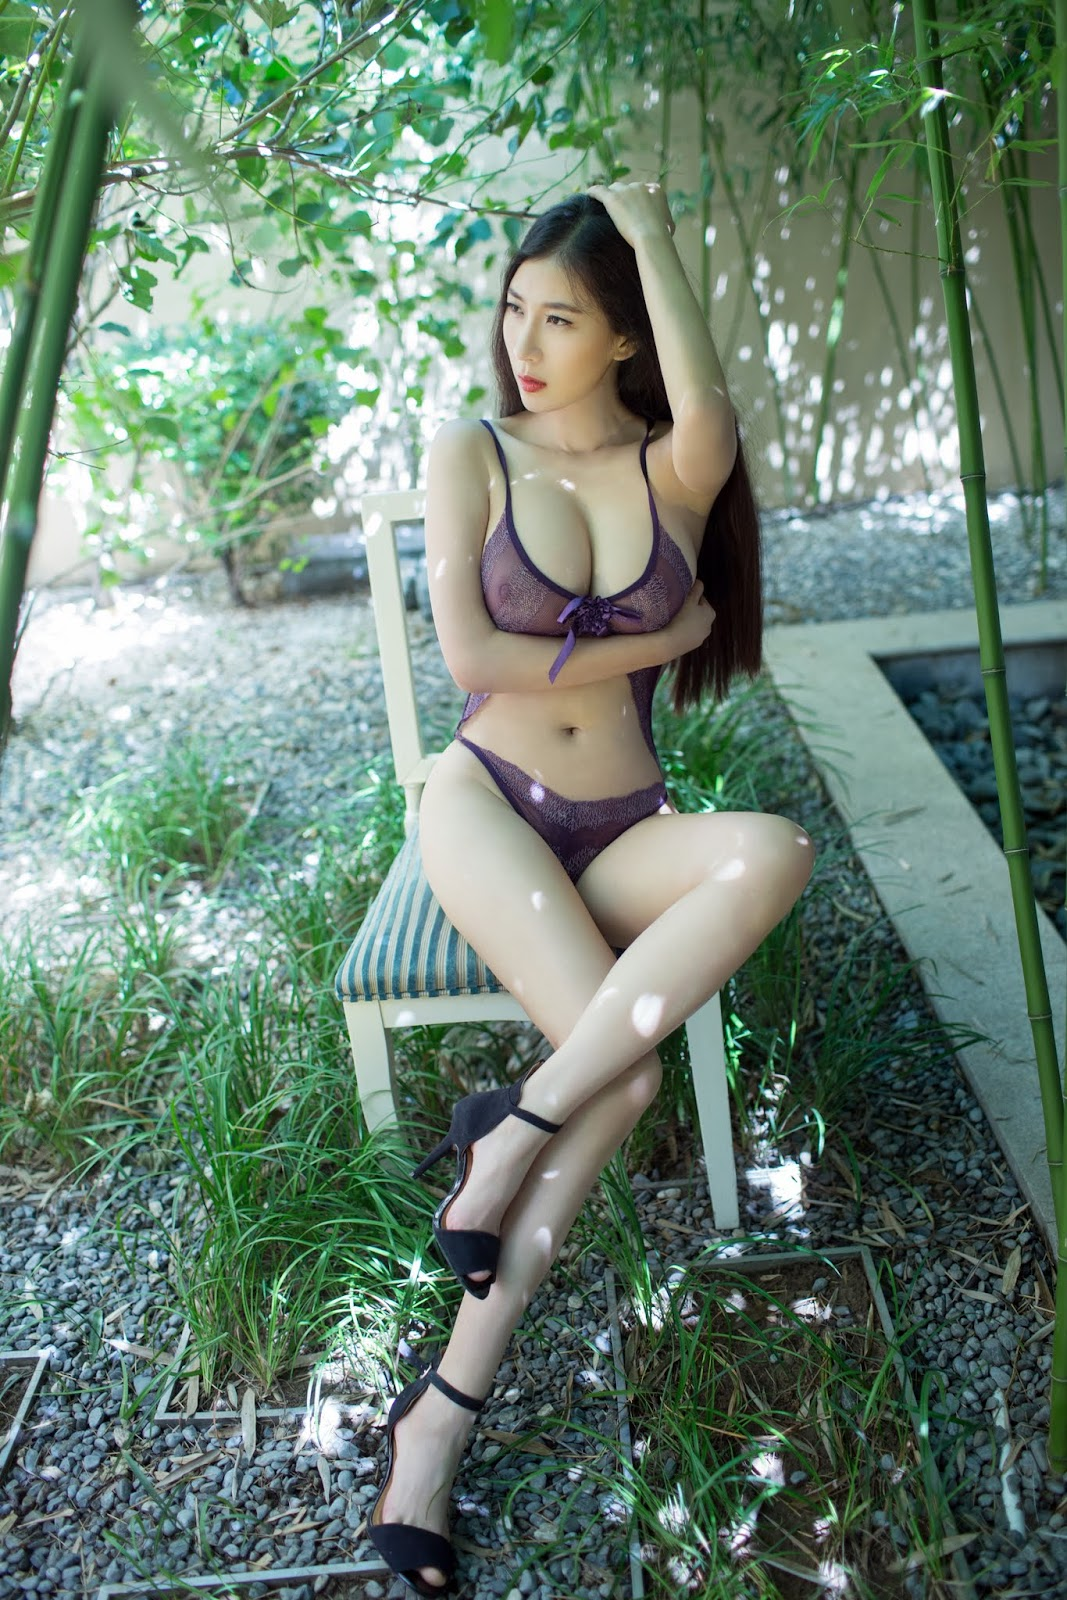 Fat chinese girls naked-5161